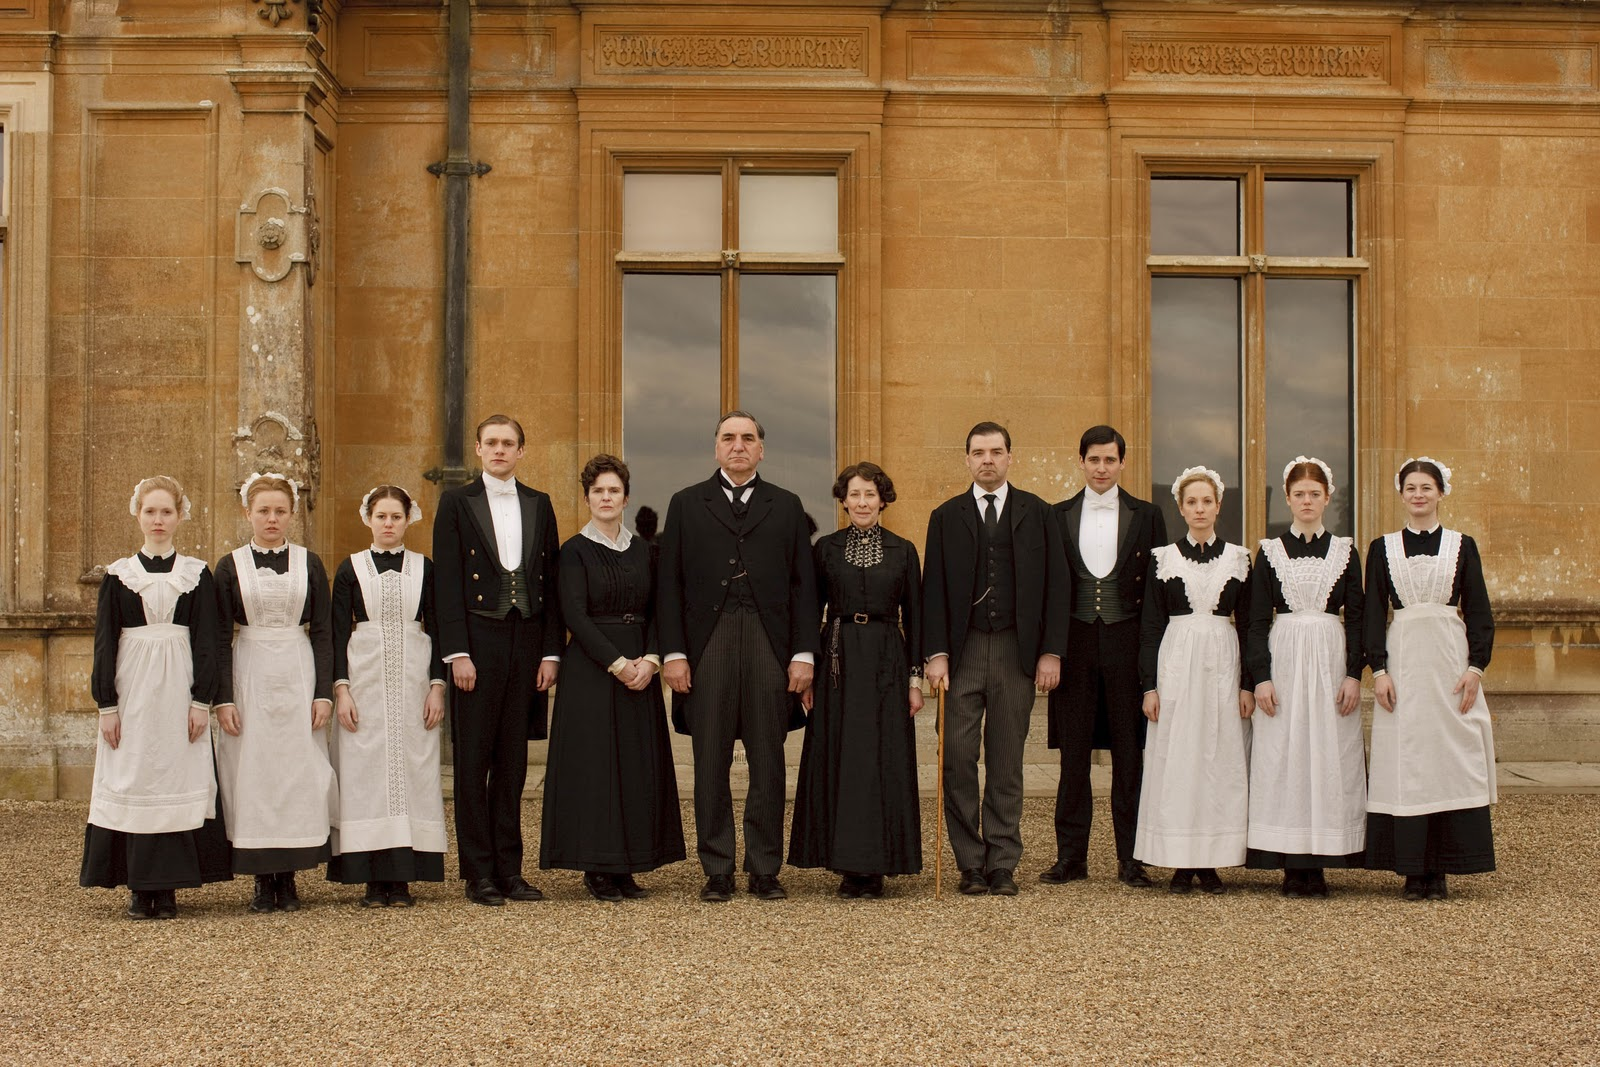 downton abbey Downton abbey, the highest rated drama in pbs history, ended on a high note with big ratings.